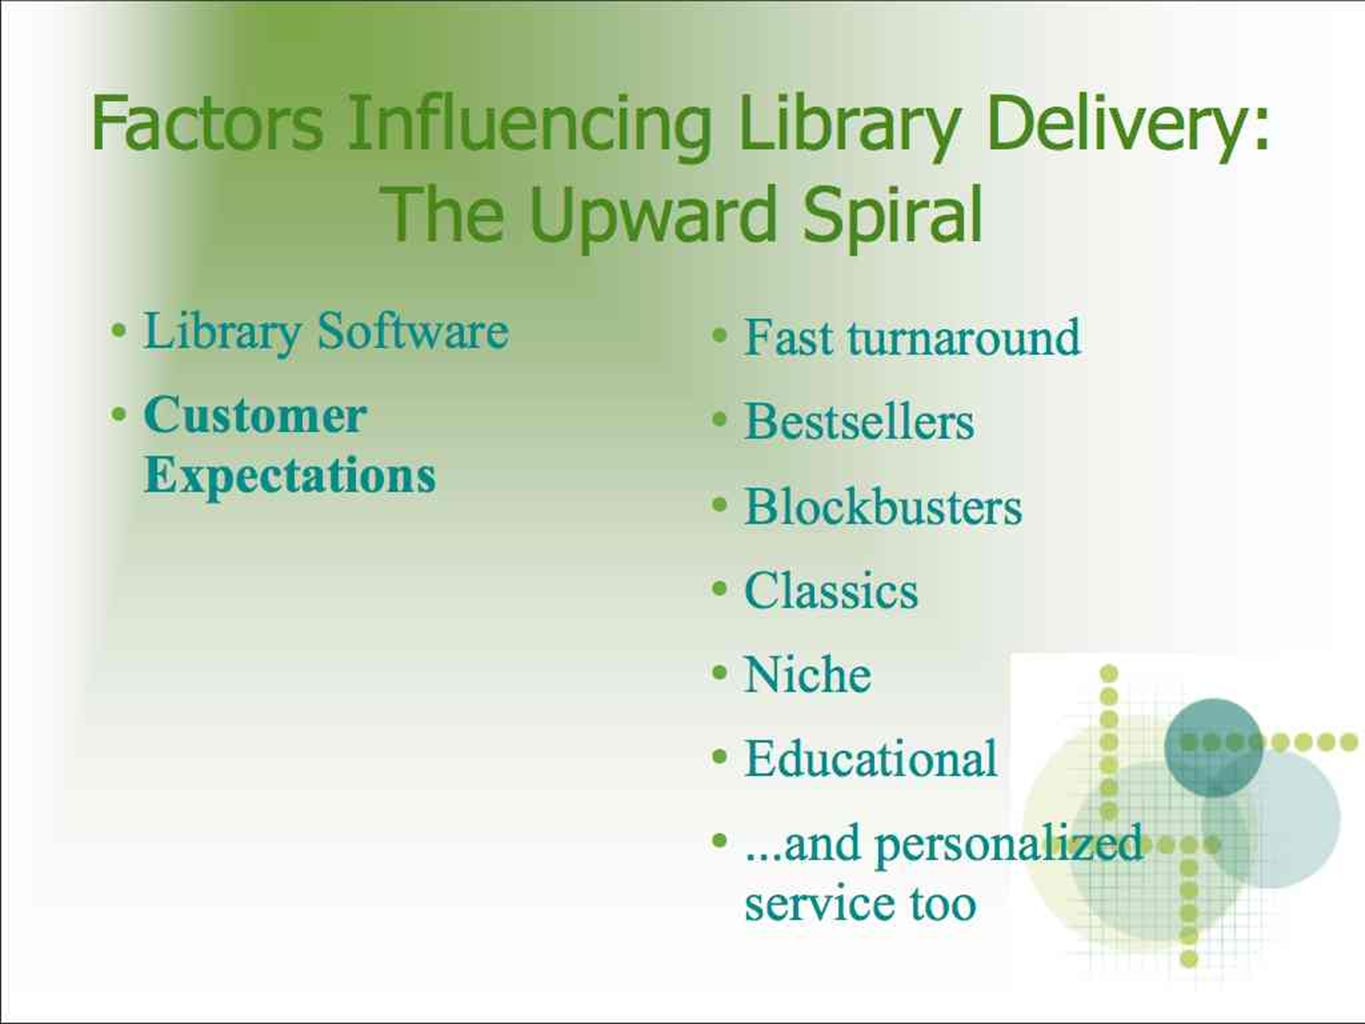 Library Software Customer Expectations Fast turnaround Bestsellers Blockbusters Classics Niche Educational...and personalized service too Factors Influencing Library Delivery: The Upward Spiral